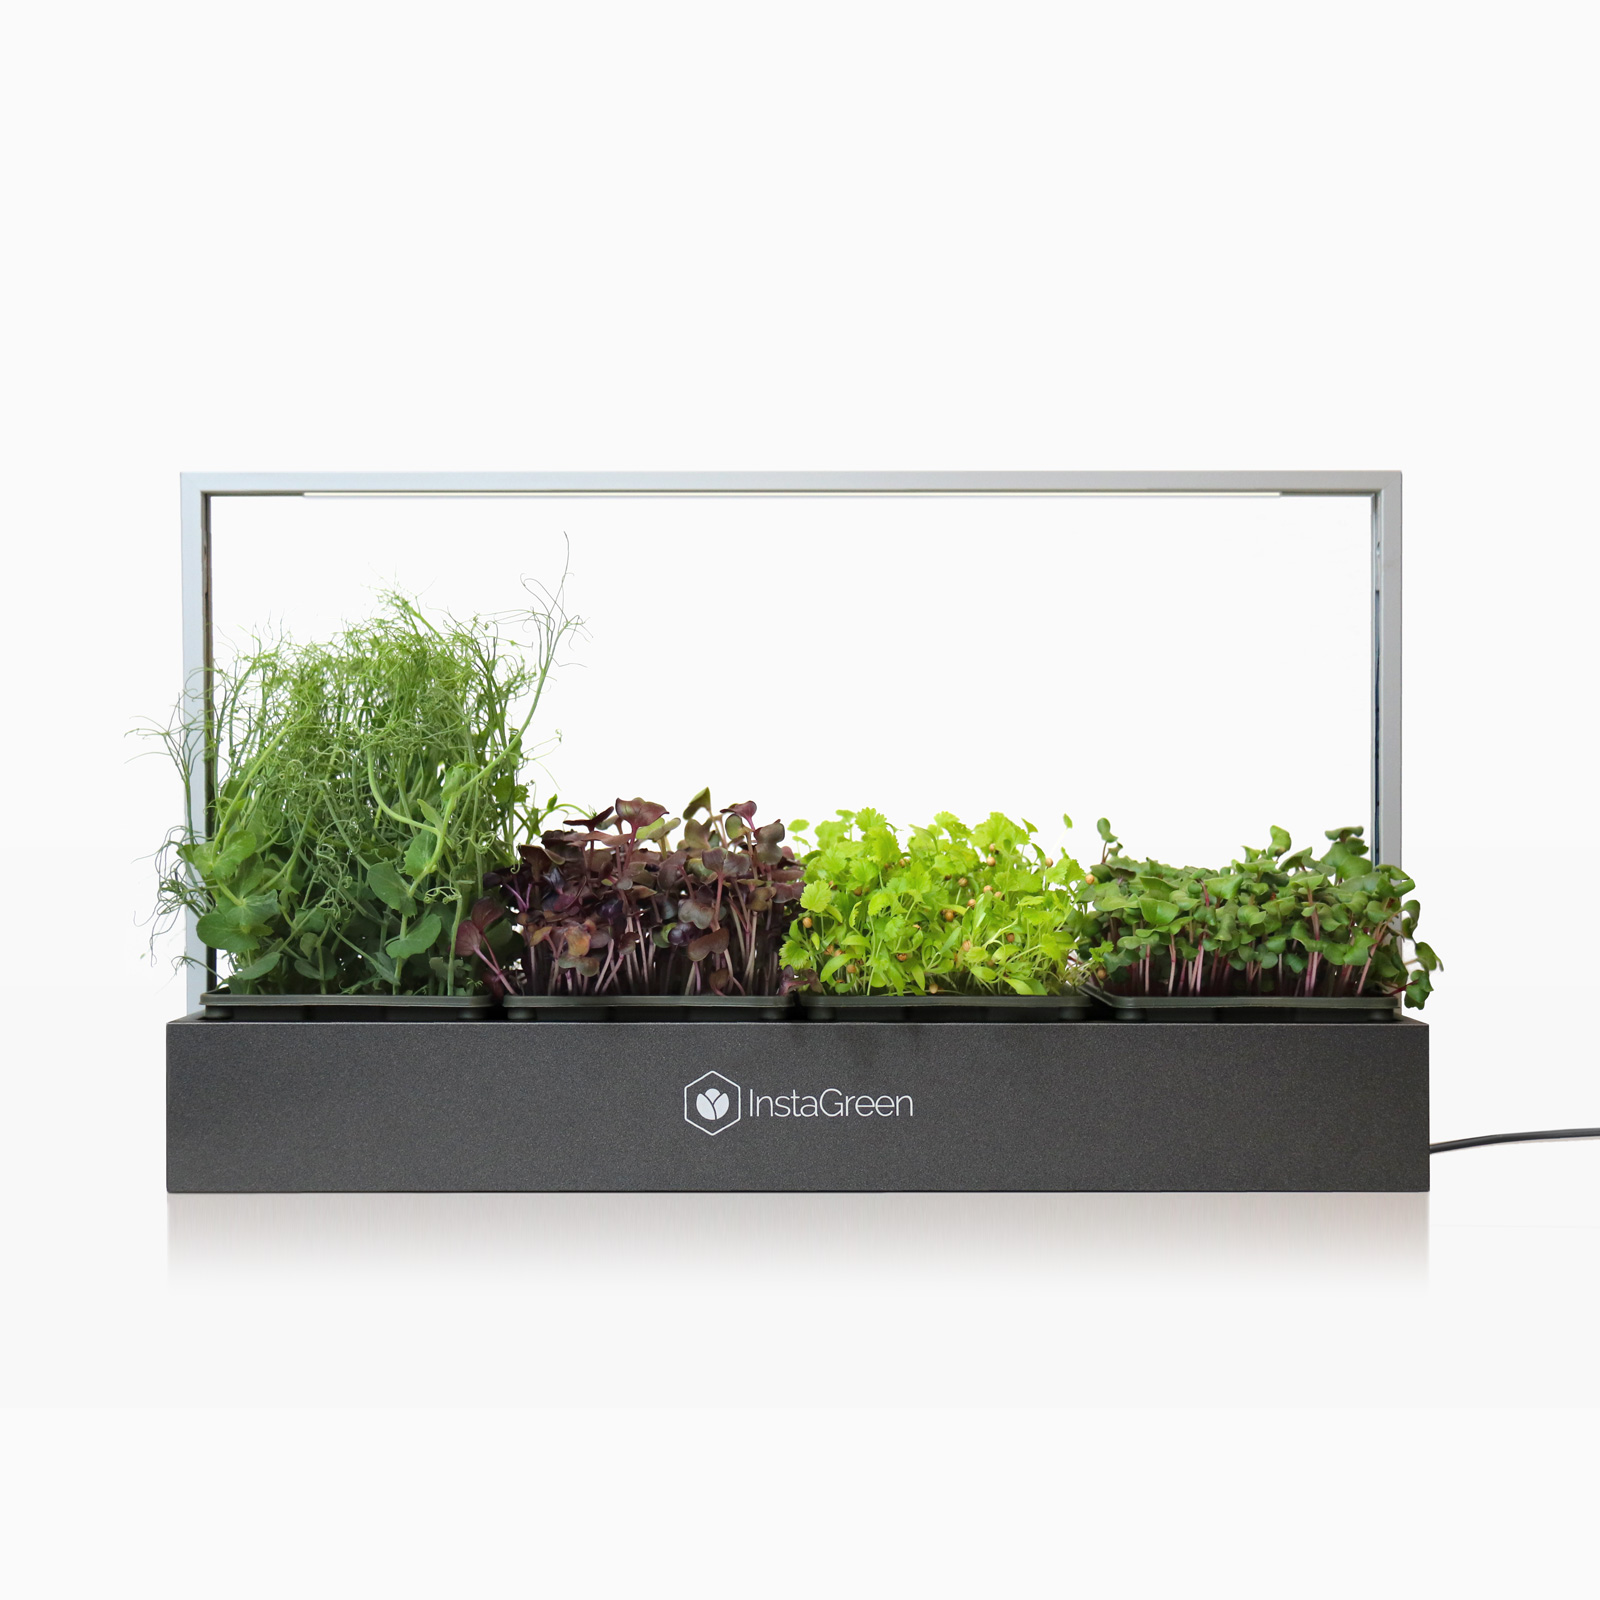 InstaGreen microgreen display dark aluminium filled with healthy microgreens